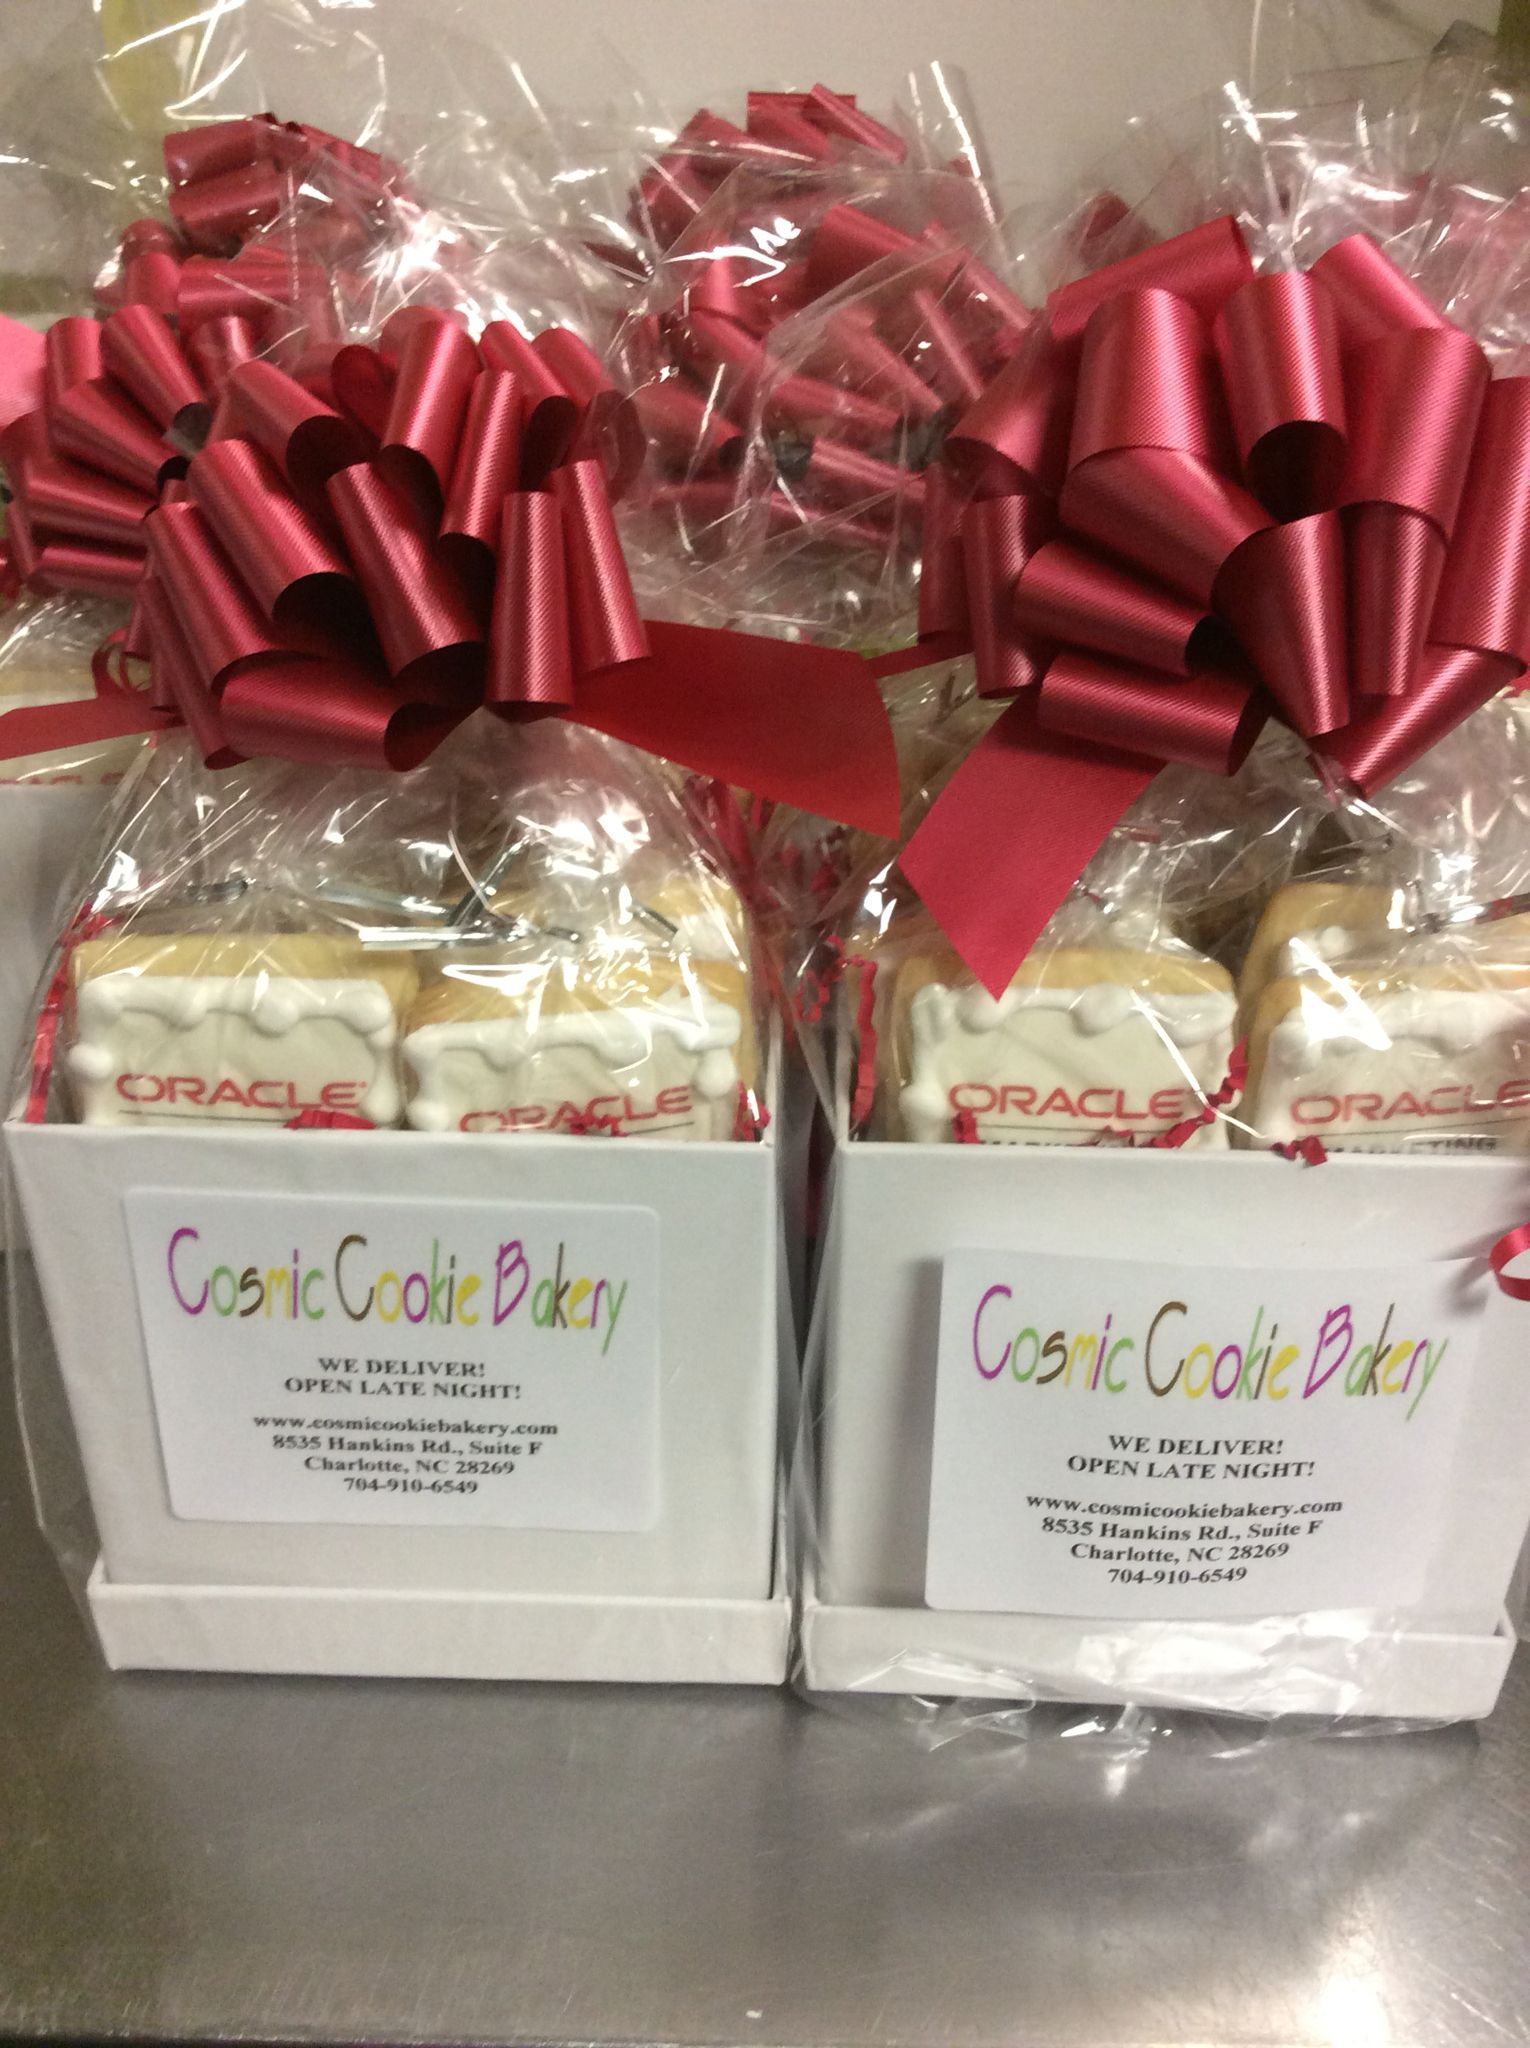 Oracle logo gift baskets. | Cookie baskets. | Pinterest